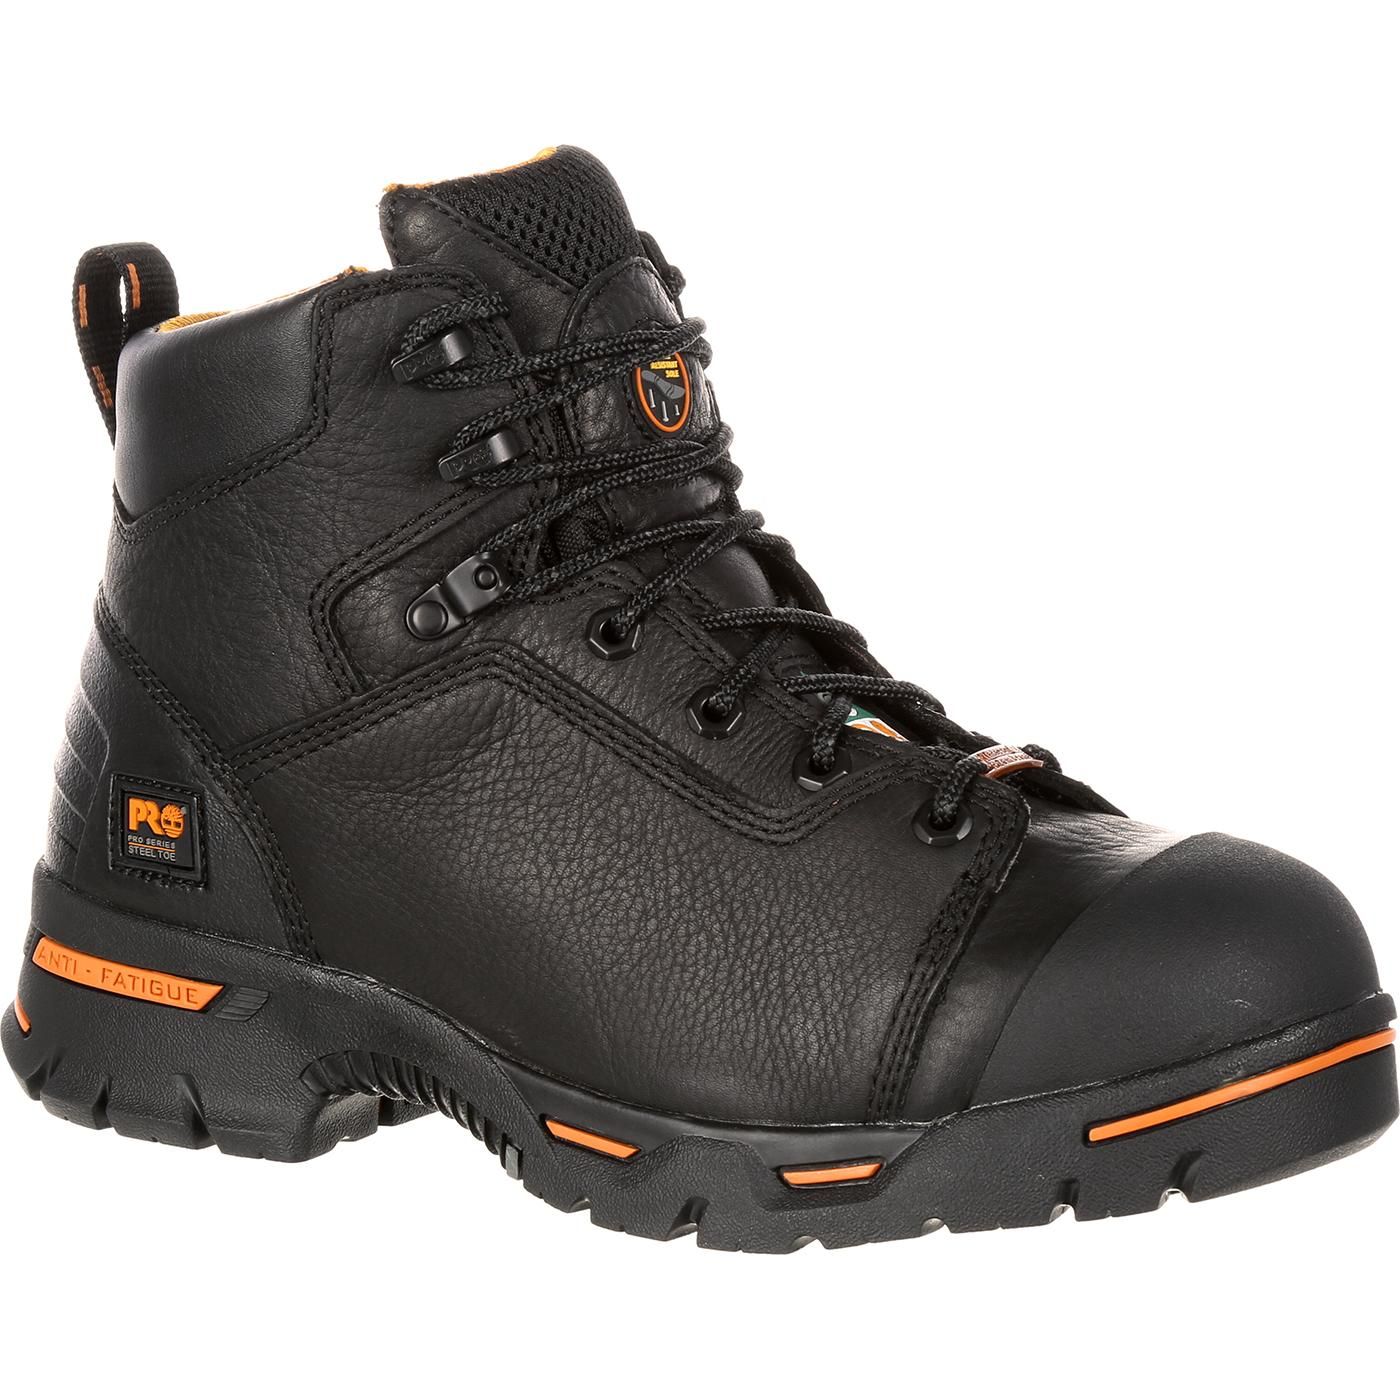 a243b843a59 Timberland PRO Endurance CSA-Approved Steel Toe Puncture-Resistant  Waterproof Work Boot